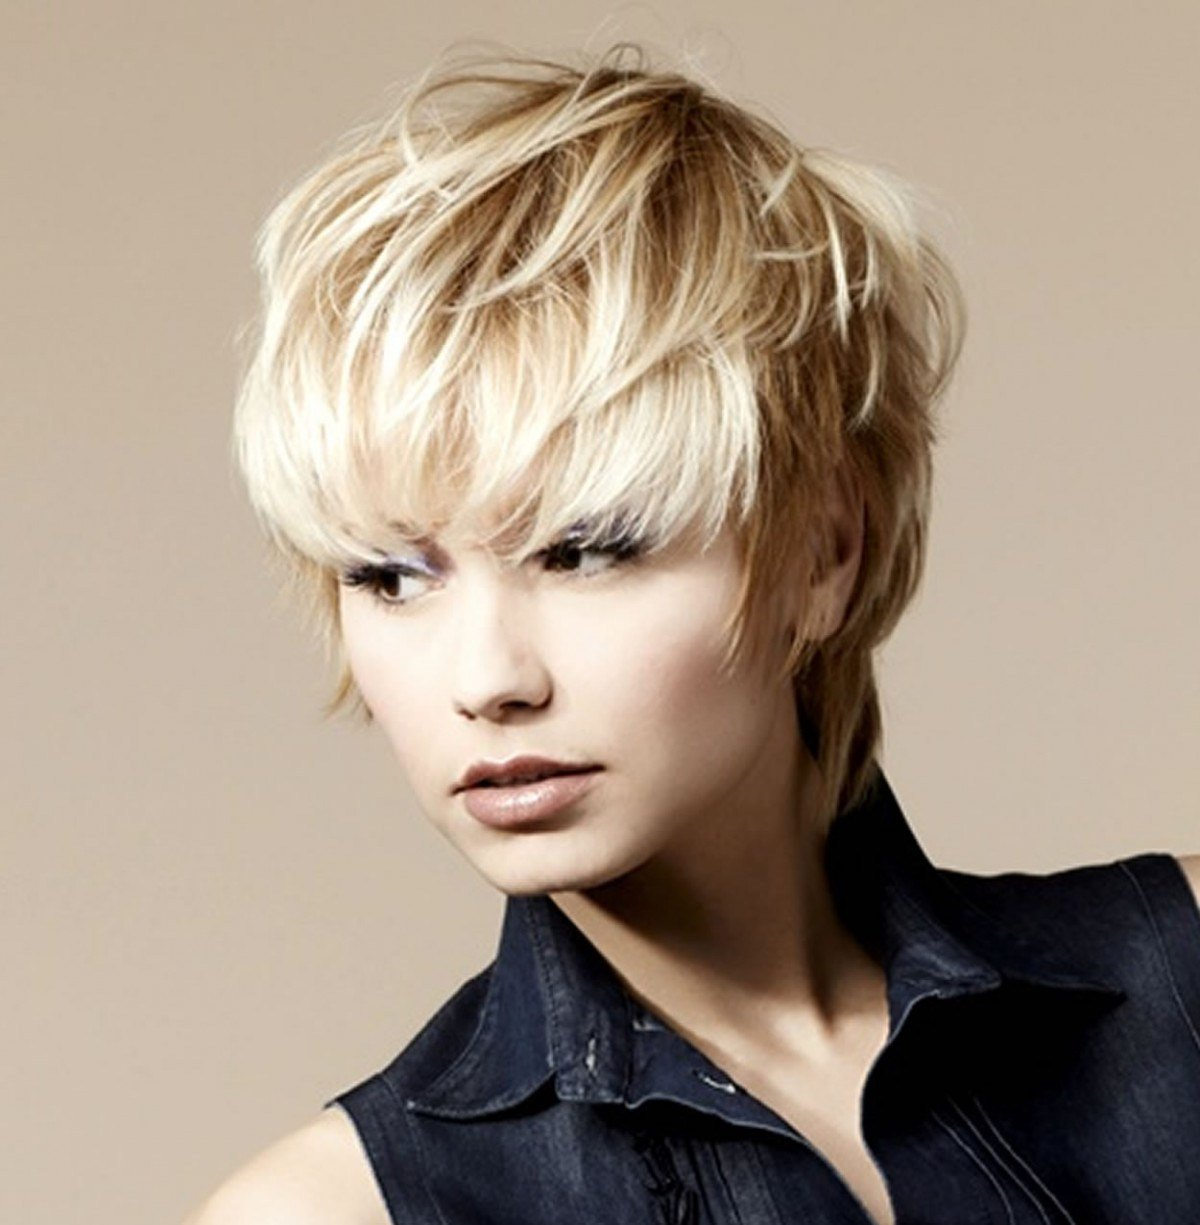 New Bob Hairstyle Dress 60 Unique Pixie Bob Haircuts Ideas With Pictures